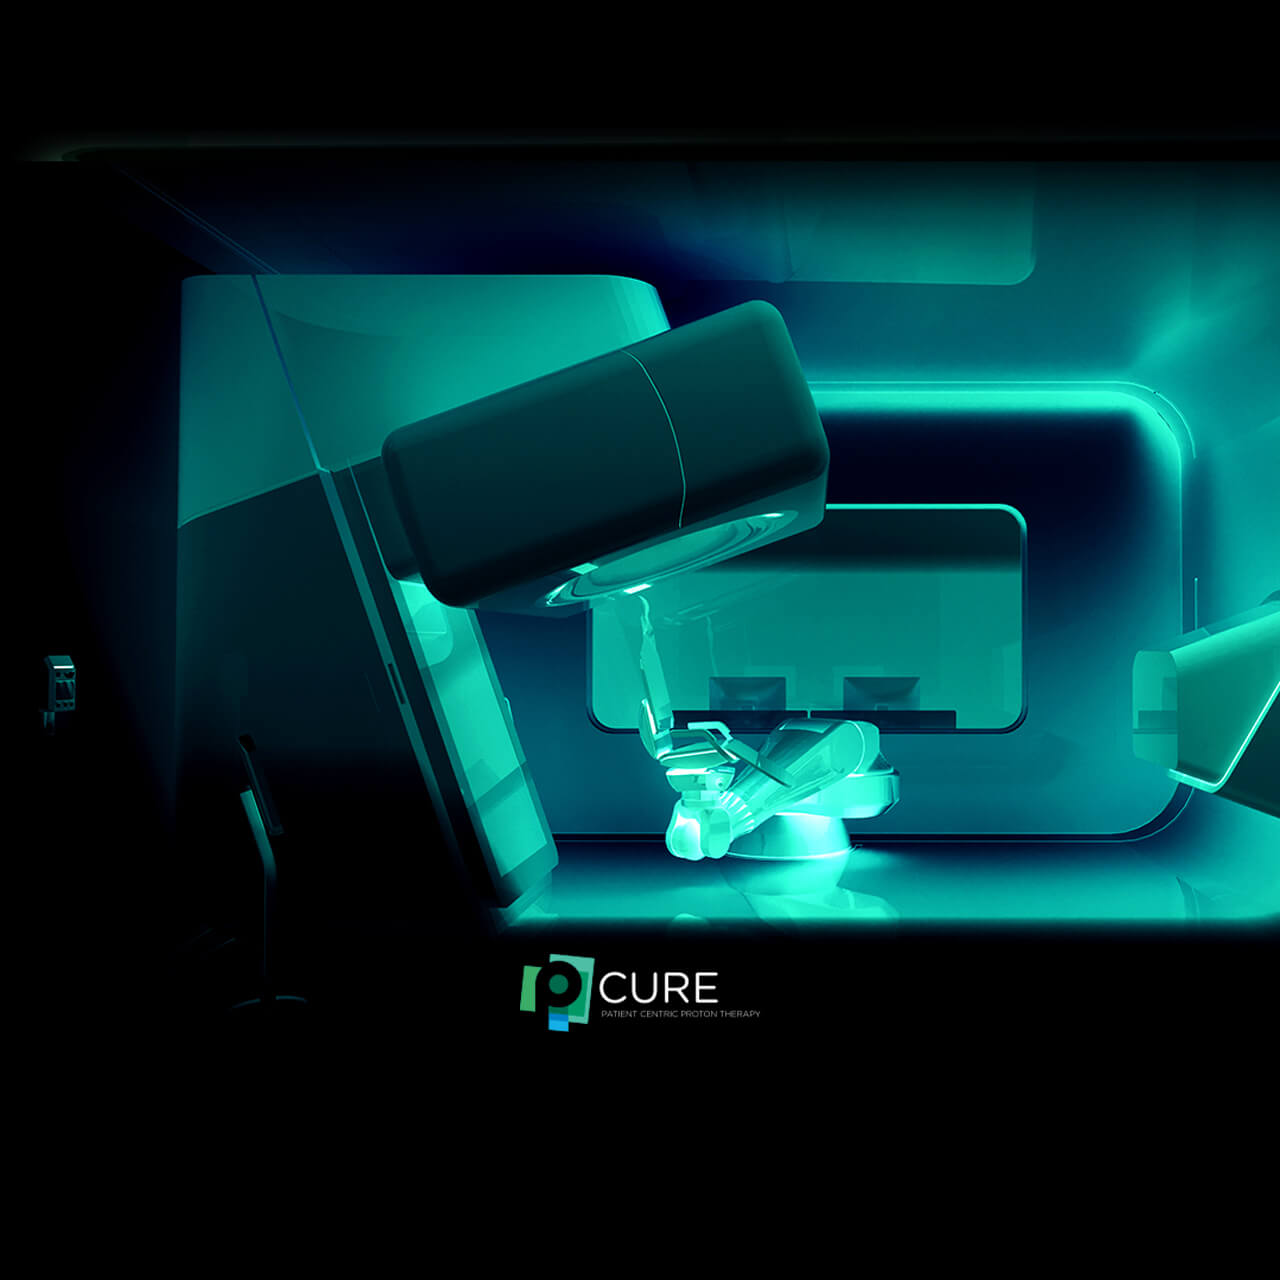 pcure-featured-image (1)